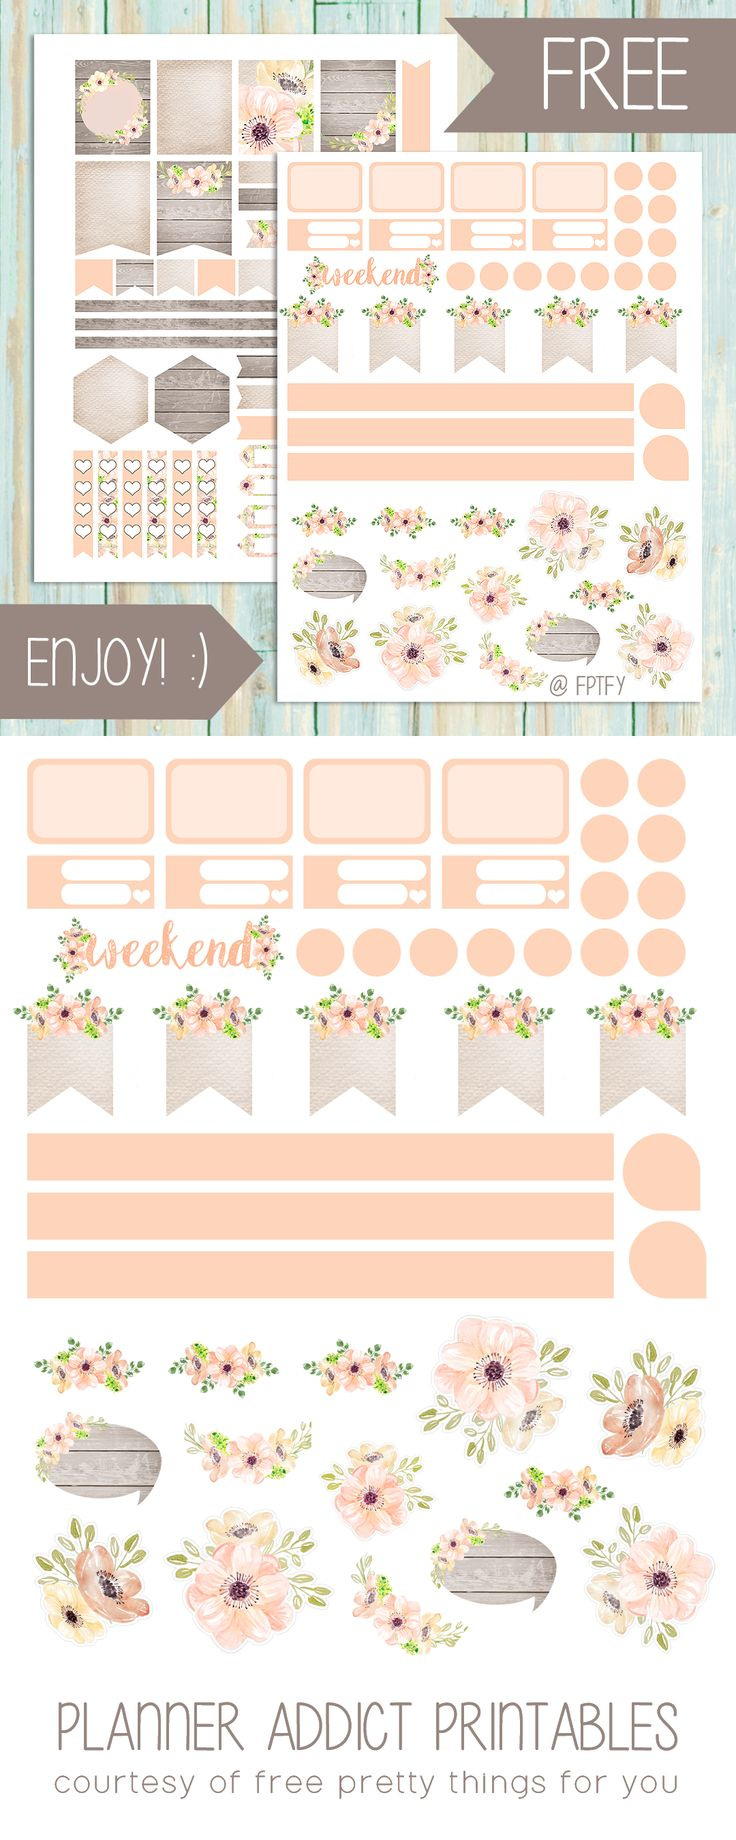 Free Planner Printables: Anemone Blush - Free Pretty Things For You {newsletter subscription required}